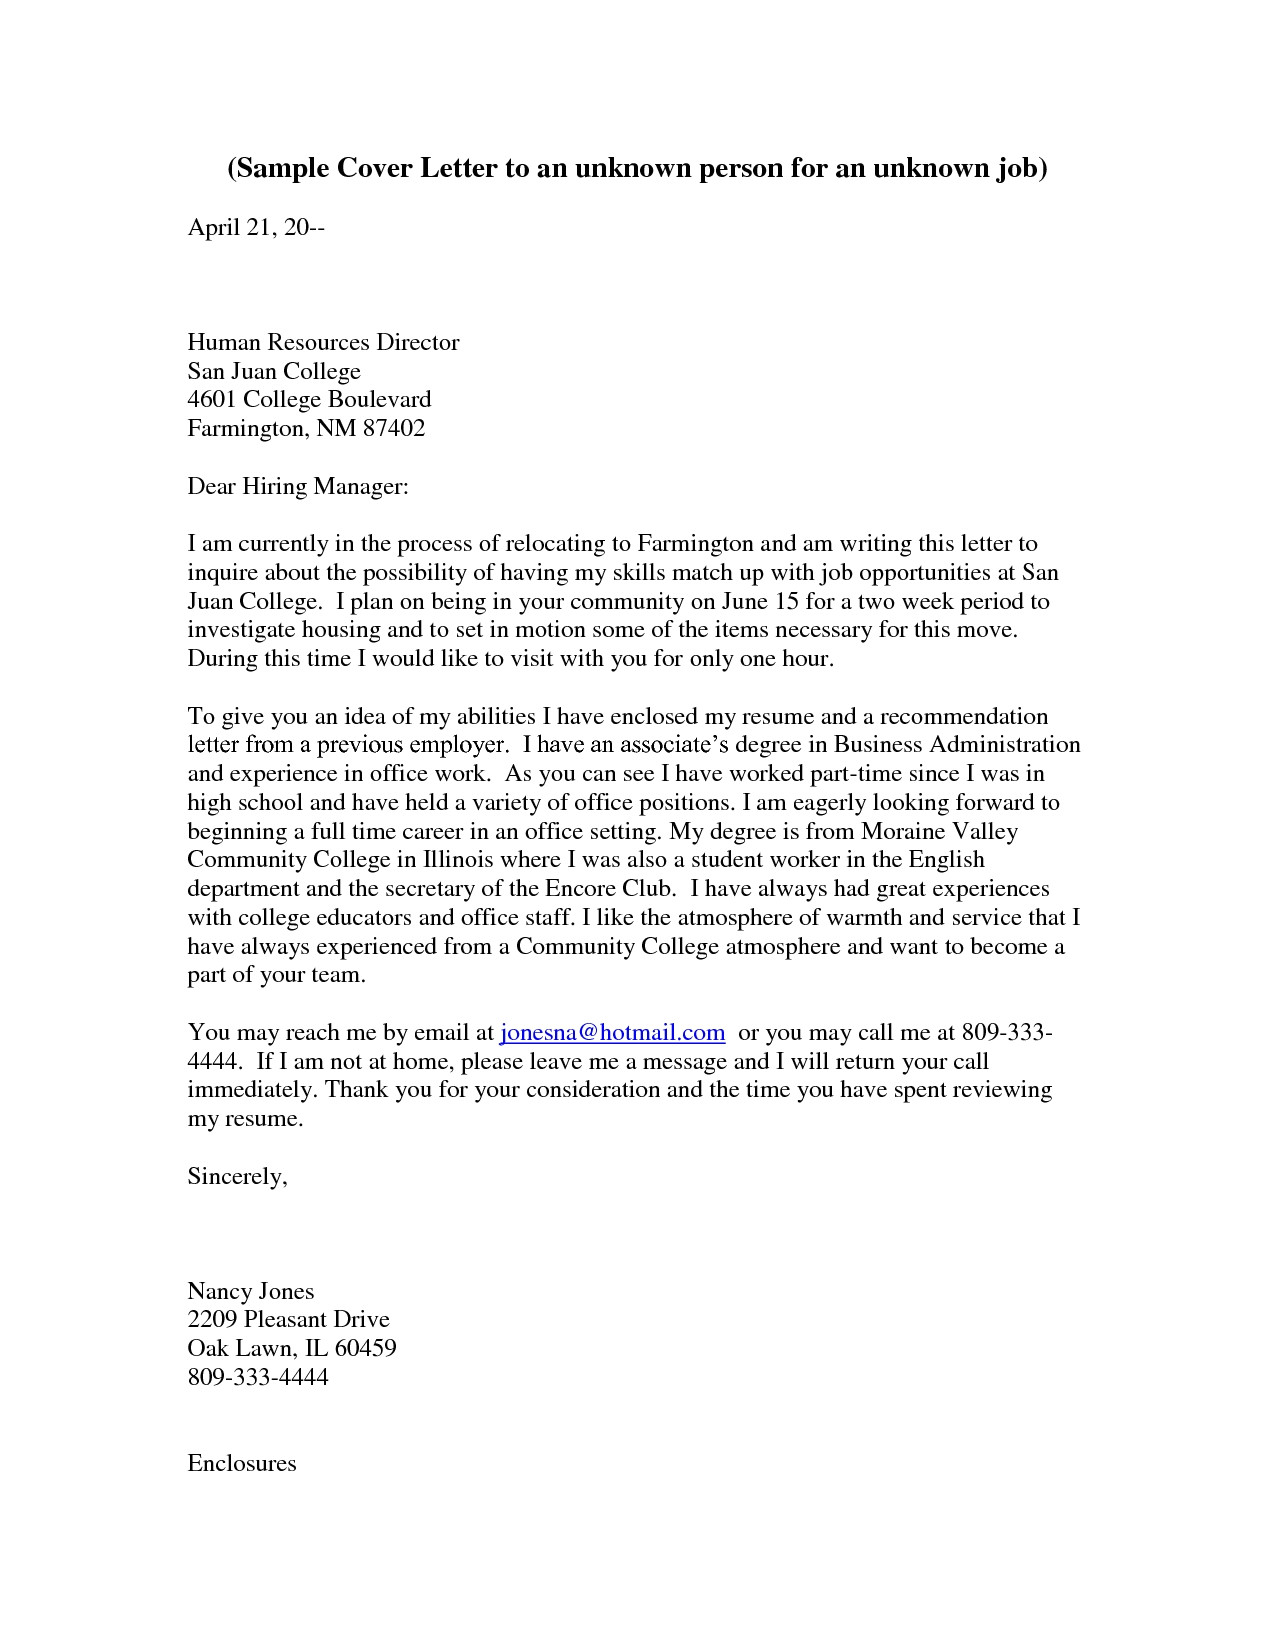 Cover Letter to Unknown Company Cover Letter to Unknown Recipient the Letter Sample